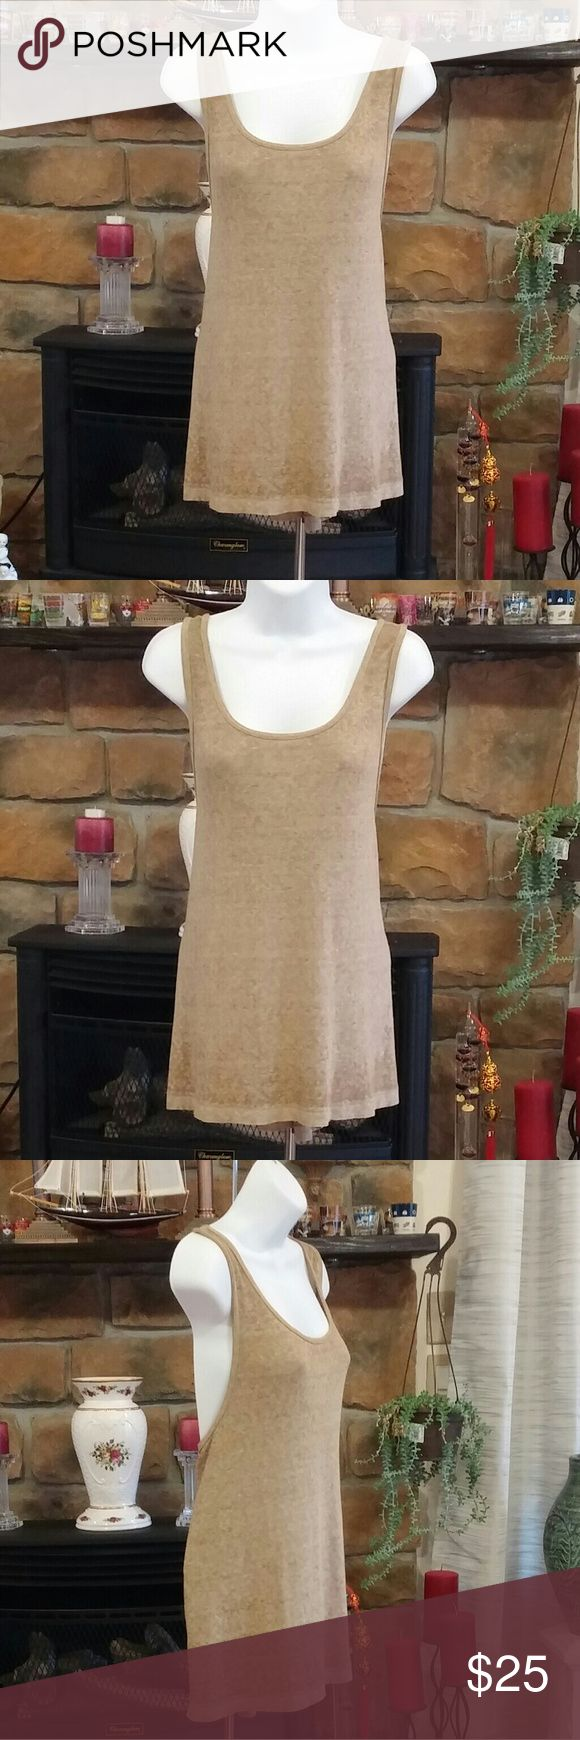 FREE PEOPLE LOOSE TANK TOP; SIZE M Army color loose tank top. NWT. NR05240960--3643 Free People Tops